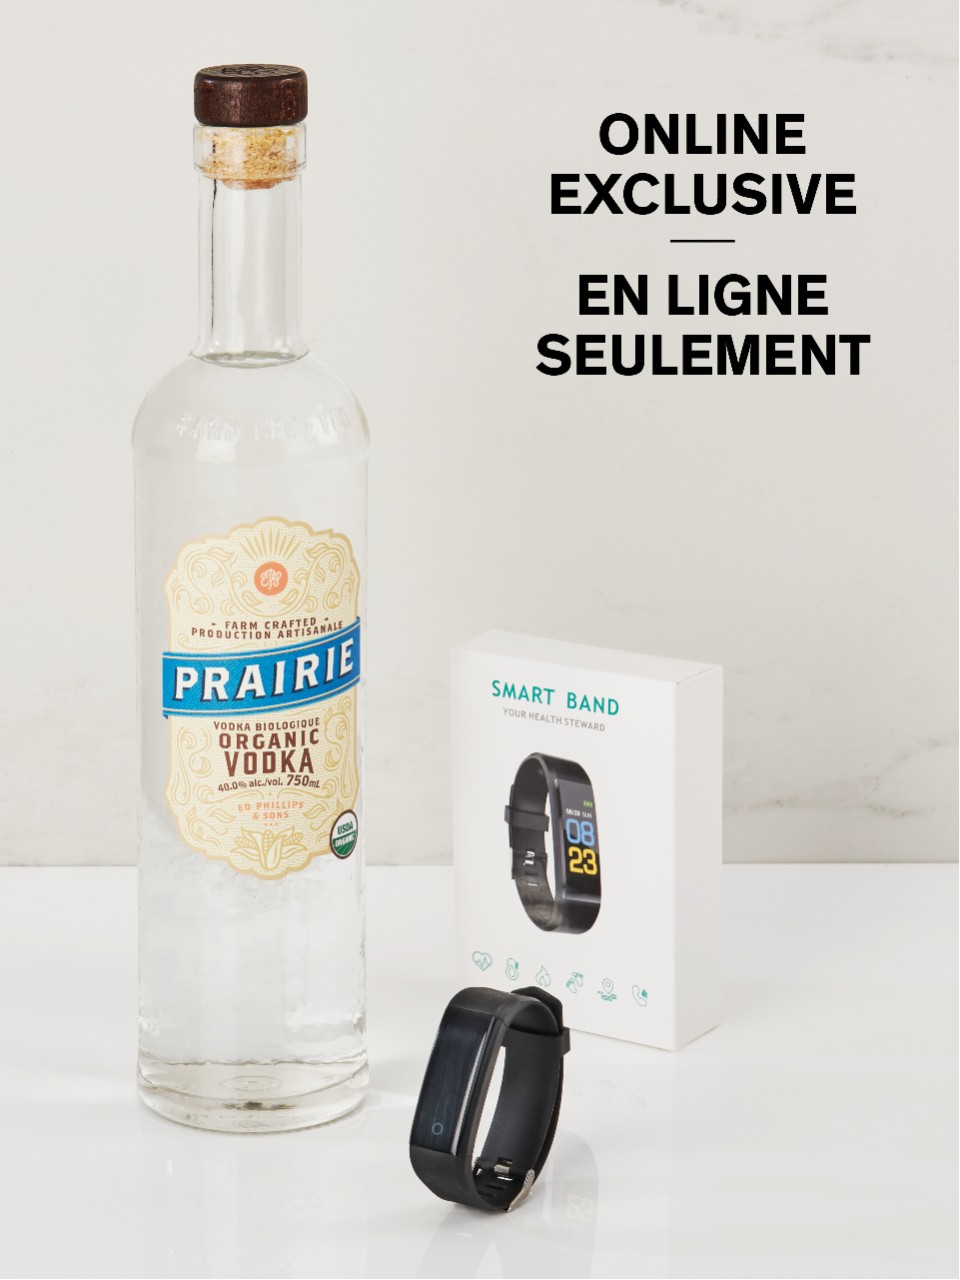 Prairie Organic Vodka With Free Fitness Watch from LCBO